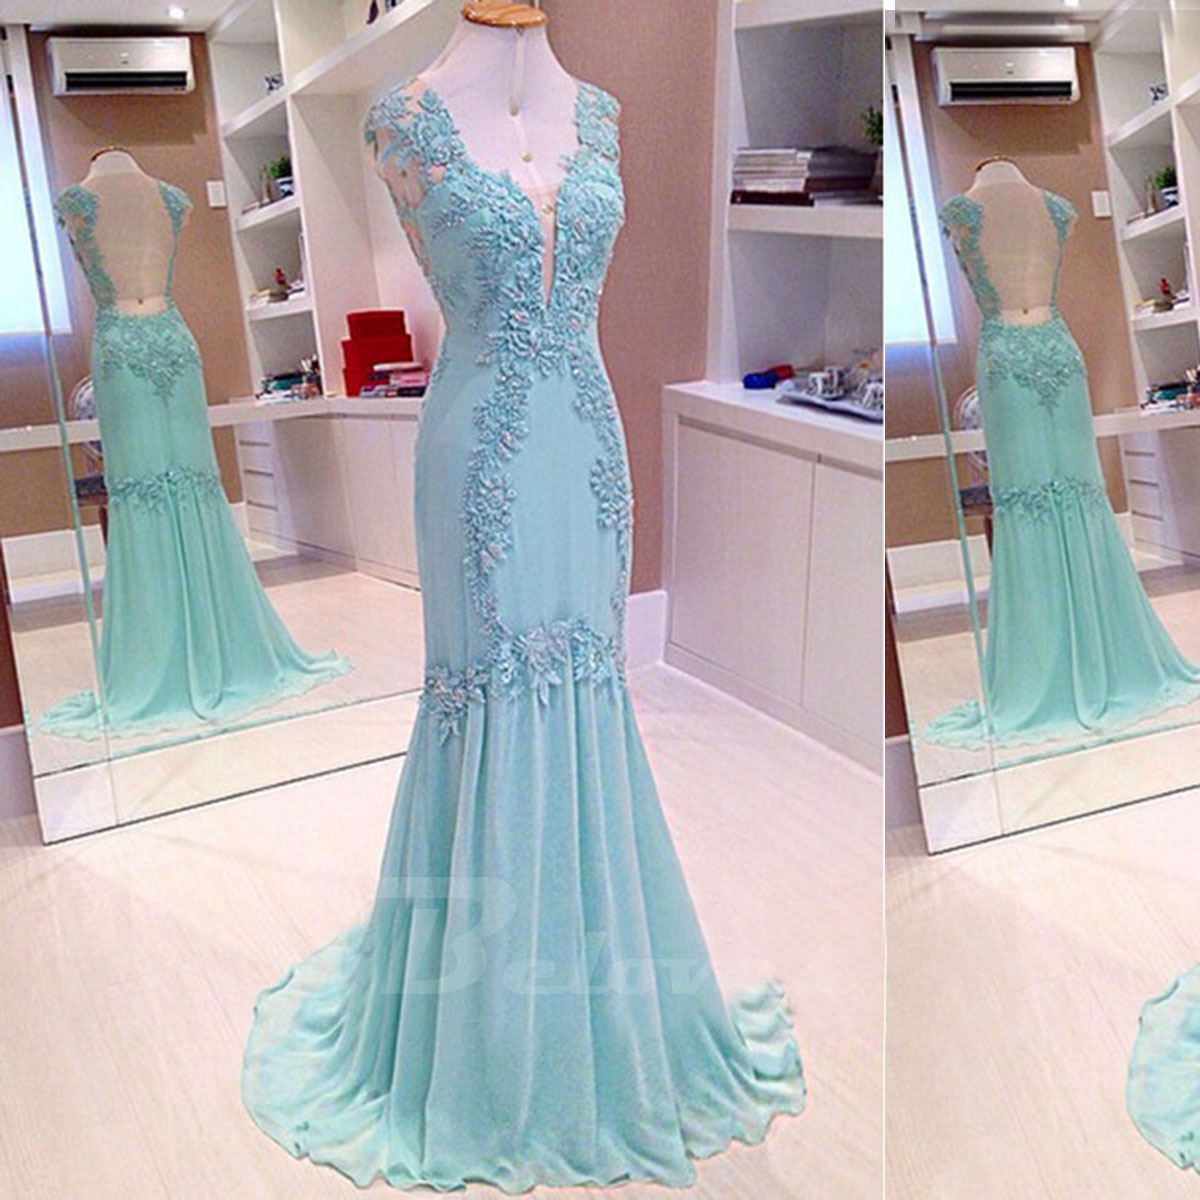 Ice Blue Chiffon V Neck Evening Gown With Lace Appliques And Sheer ...